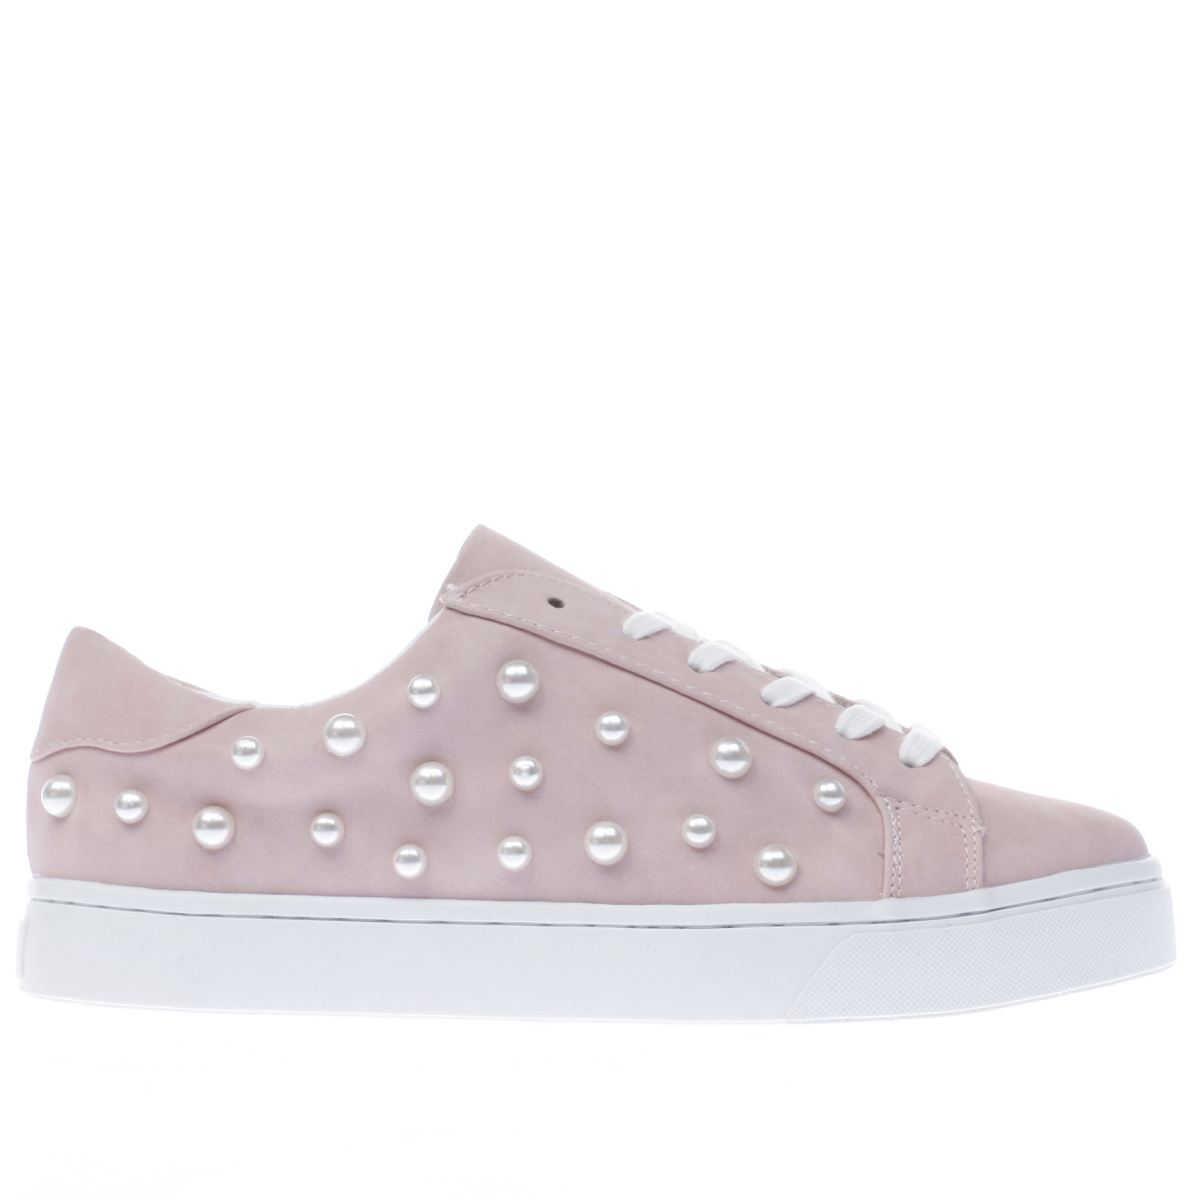 schuh pale pink sprinkle flat shoes